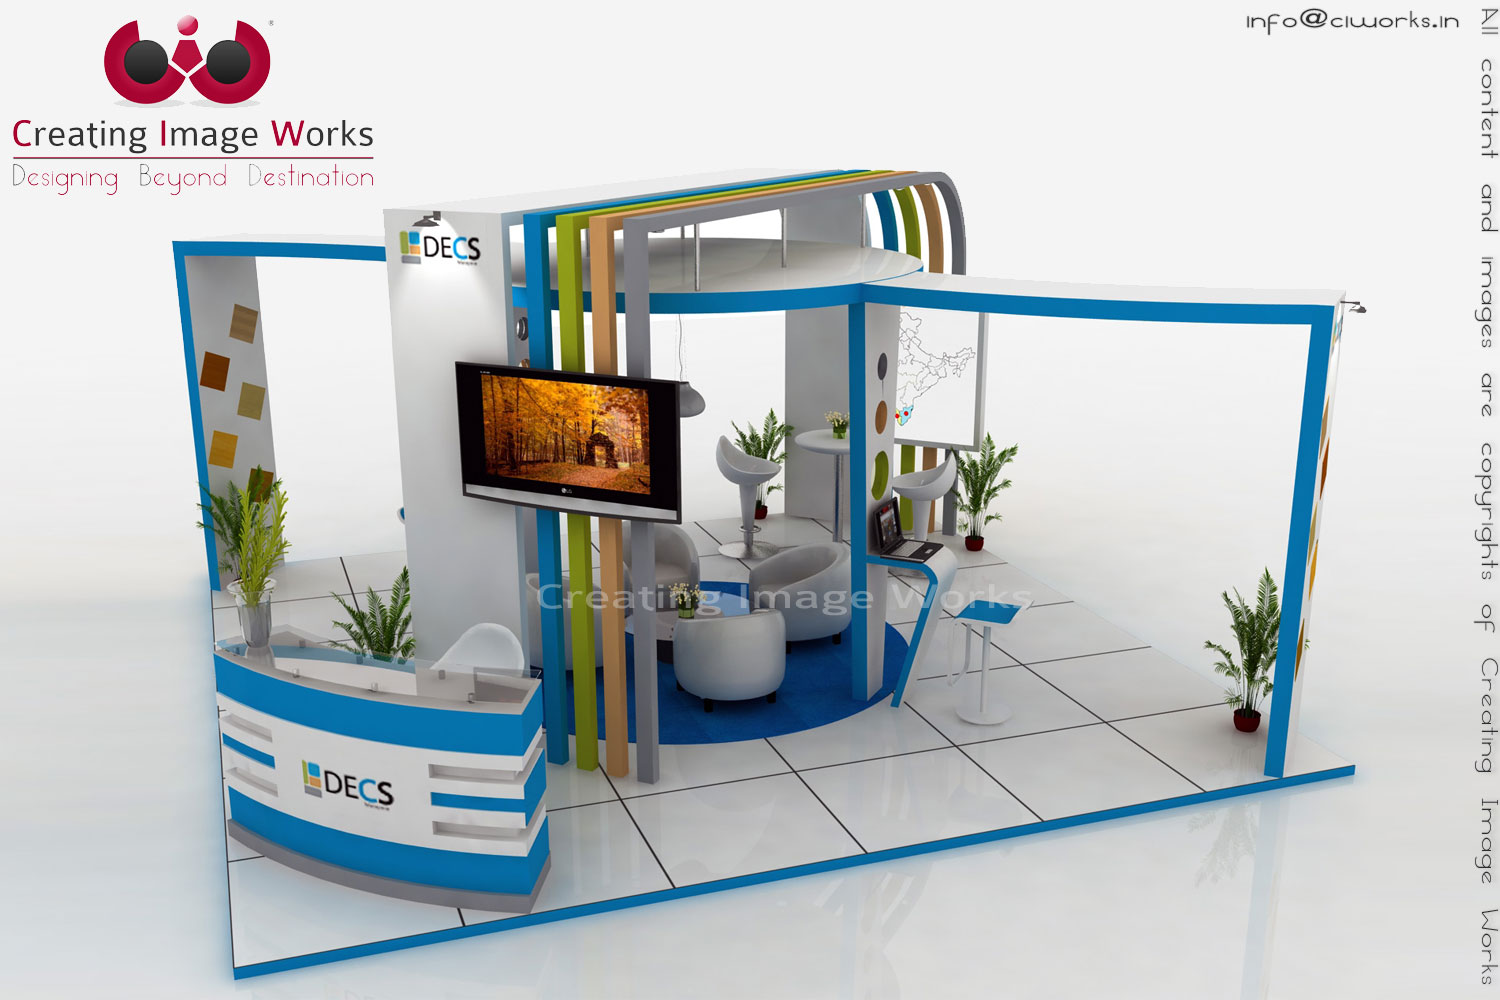 Exhibition Stall Designer Job : Exhibition stall designs by creating image works at